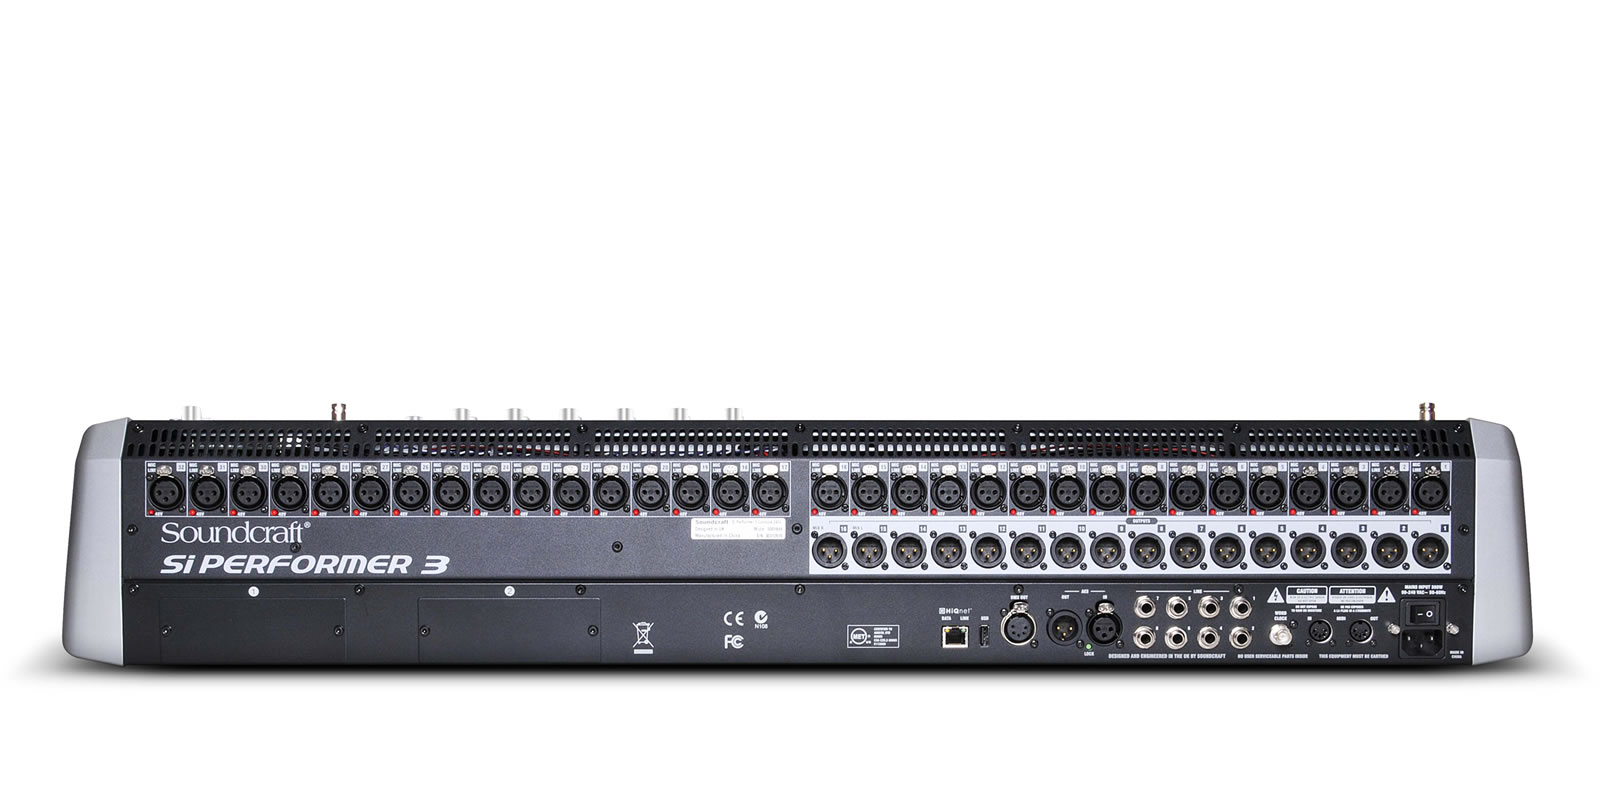 Si performer 2 | soundcraft professional audio mixers.